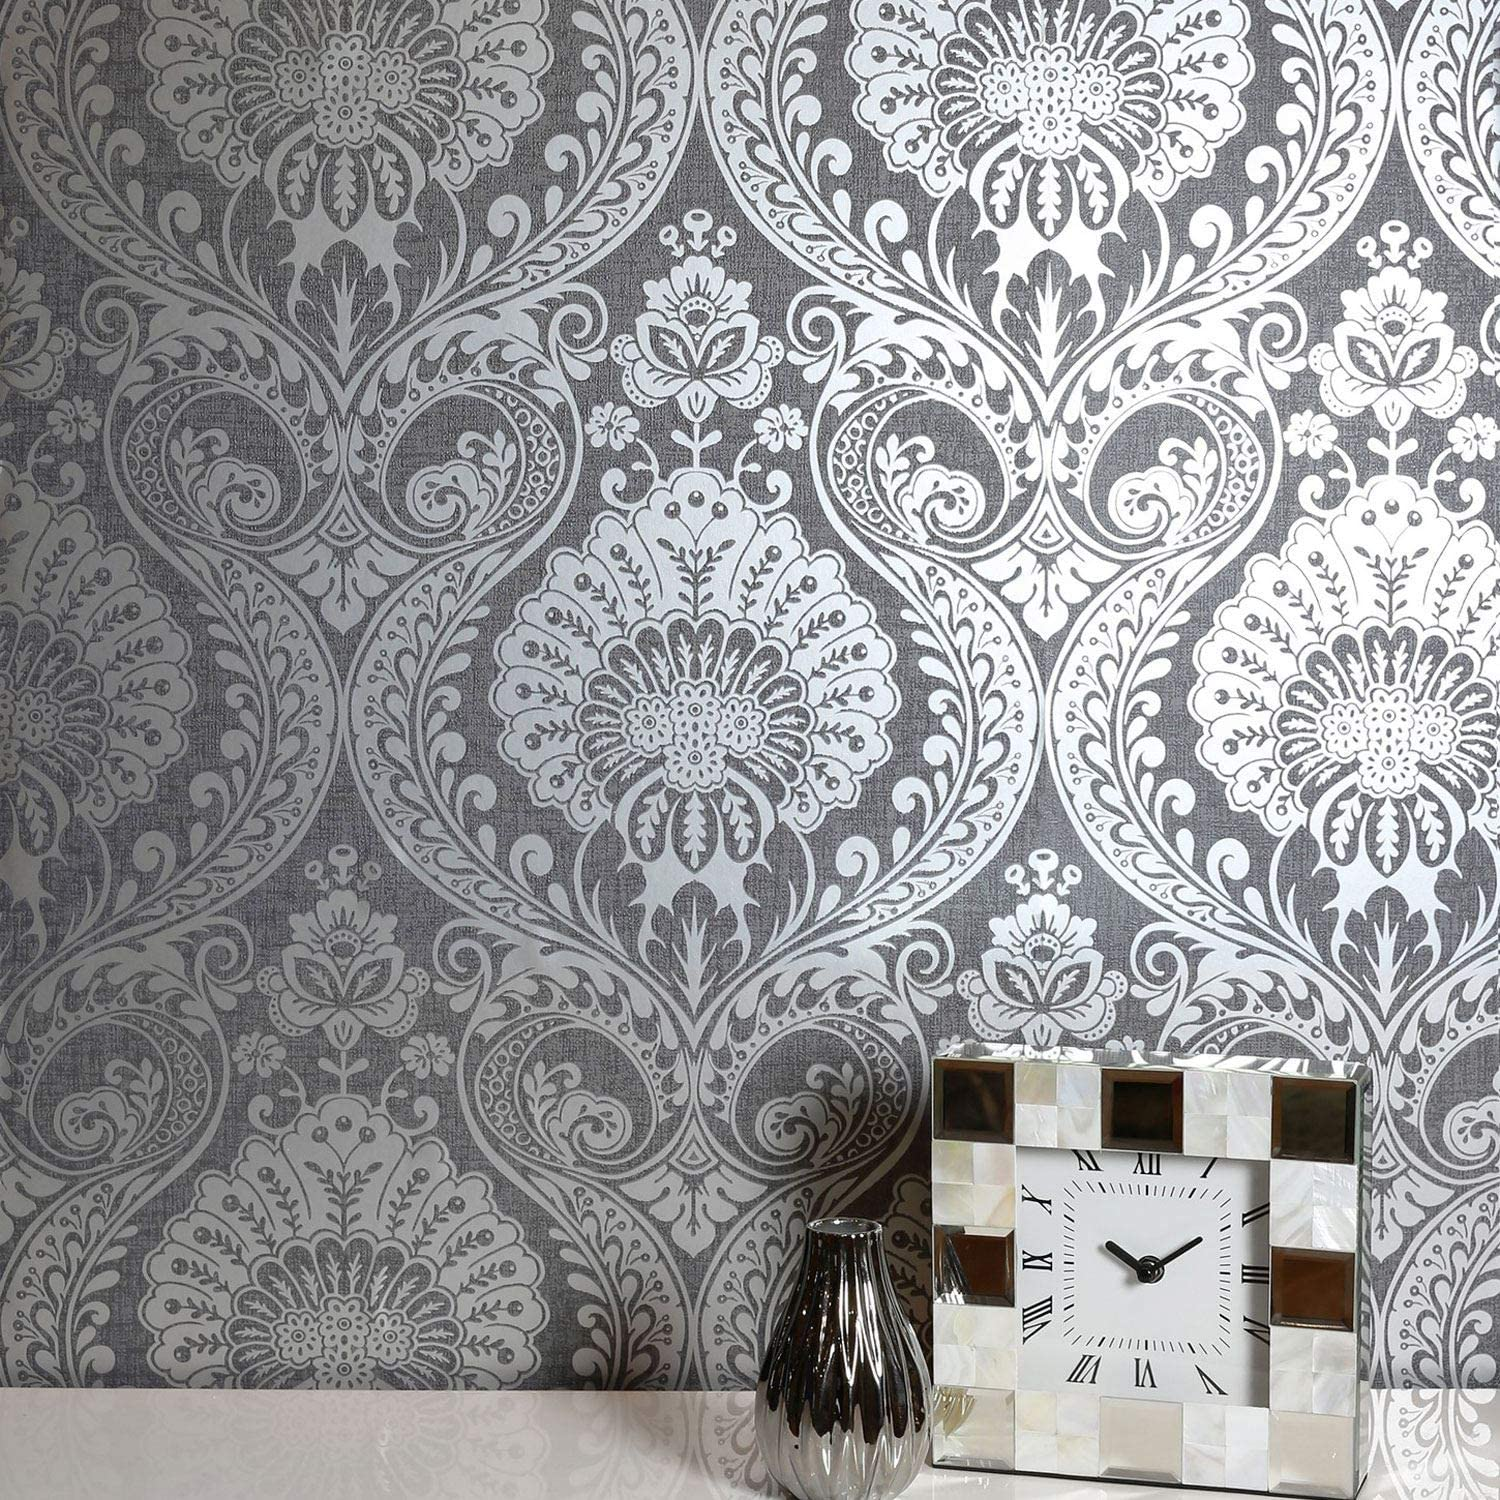 Decoris Navy Blue and Gold Damask Wallpaper by Arthouse 910308